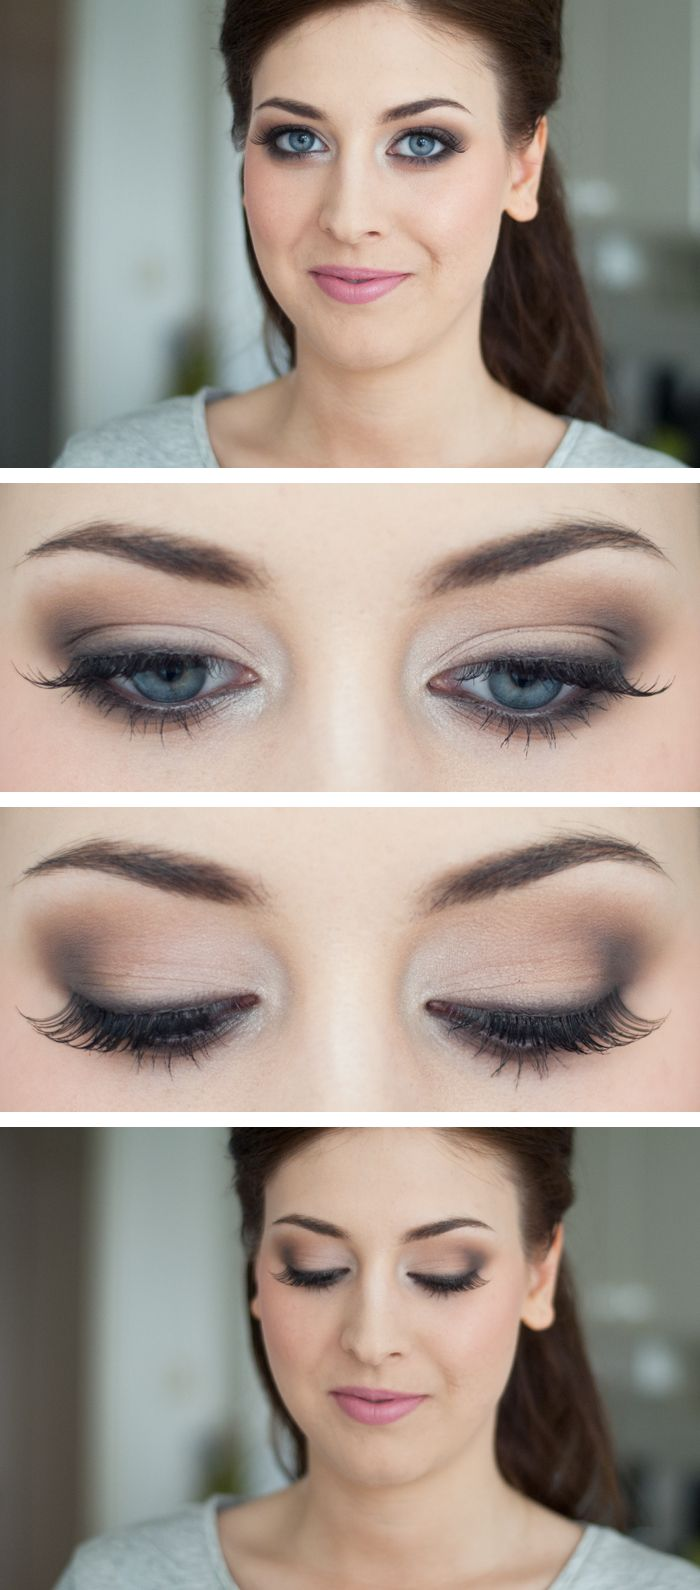 Pretty eye makeup to accentuate the eyes. This look uses dark eye shadow but isn't intimidating or too intense